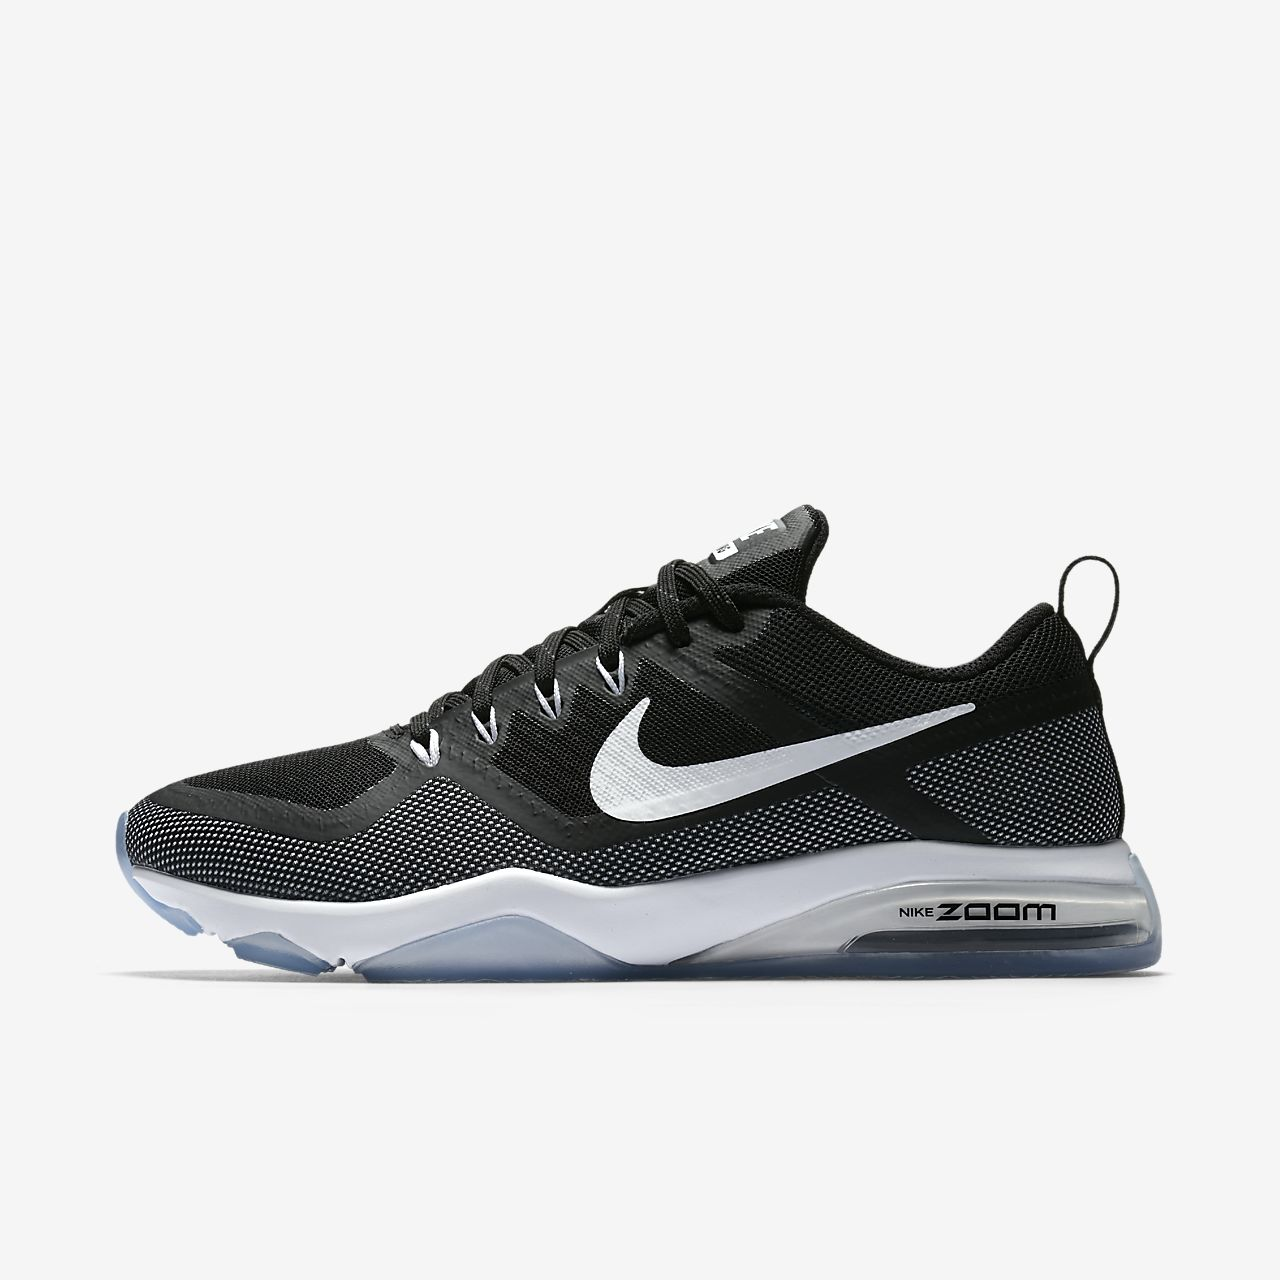 Nike Fitness Zoom Air Bas-tops Et Chaussures De Sport tapbSy